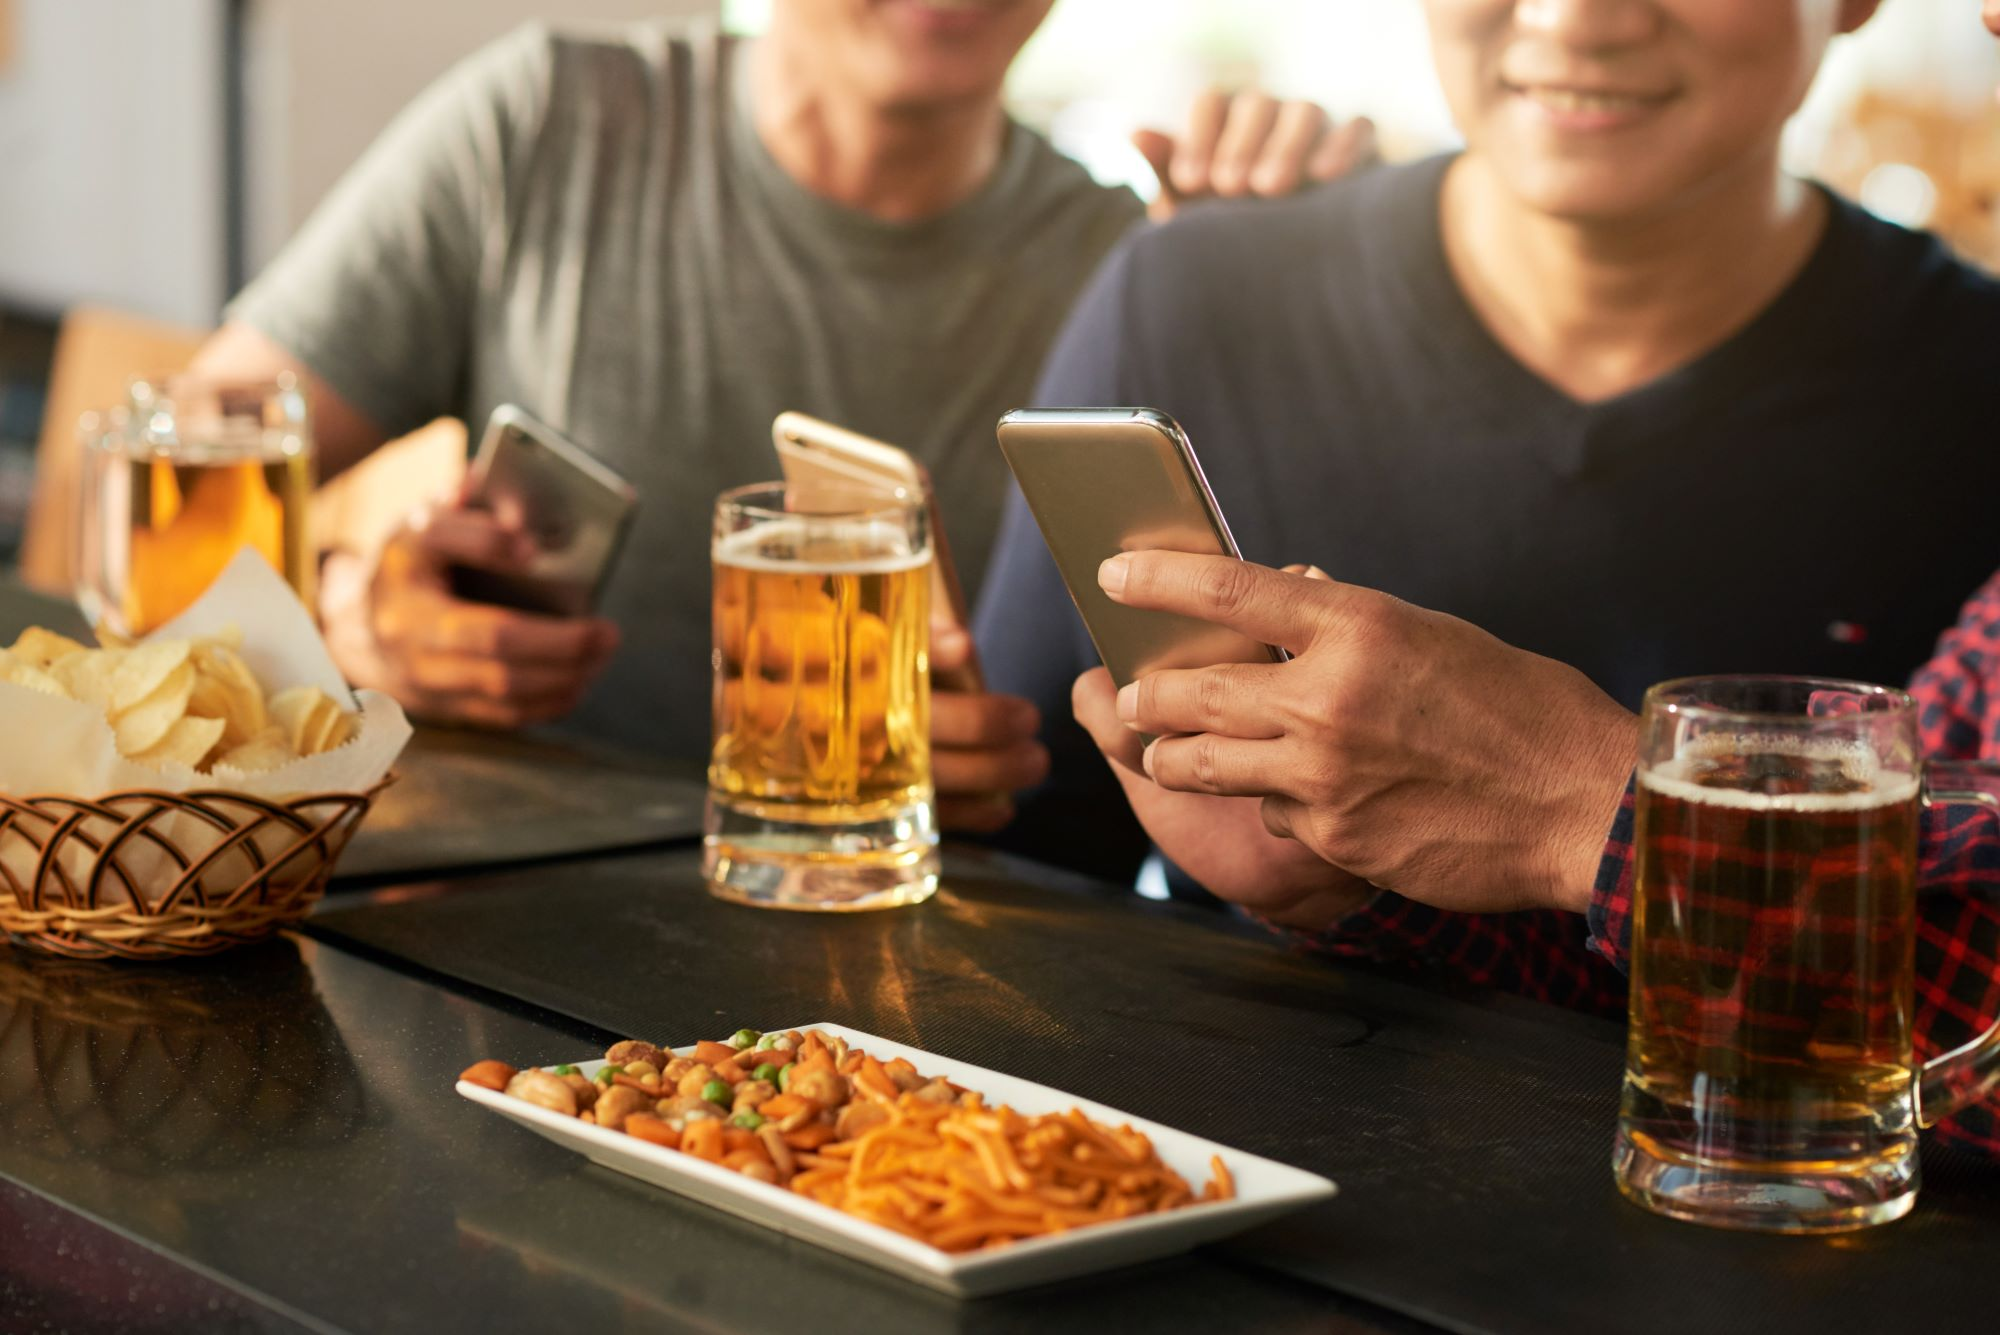 friends gathered at a bar with appetizers